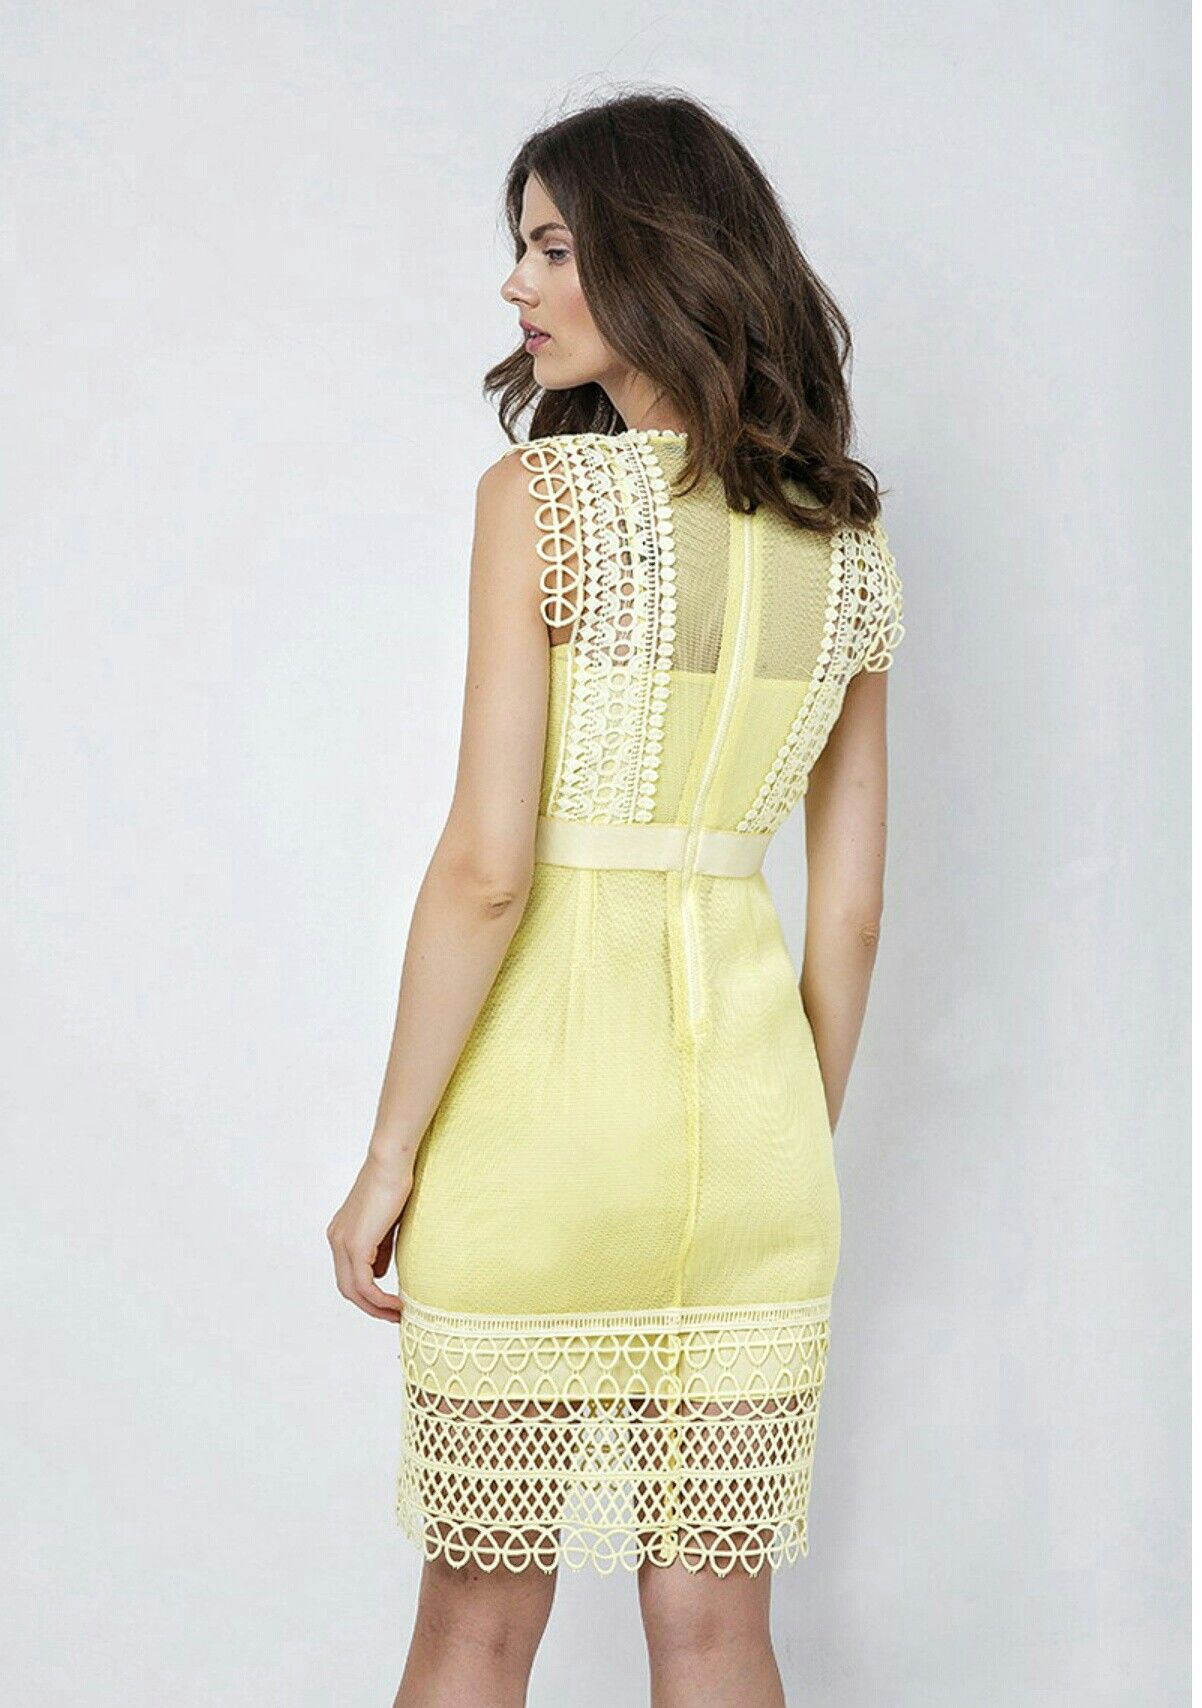 Yellow dress bdbfcac192e